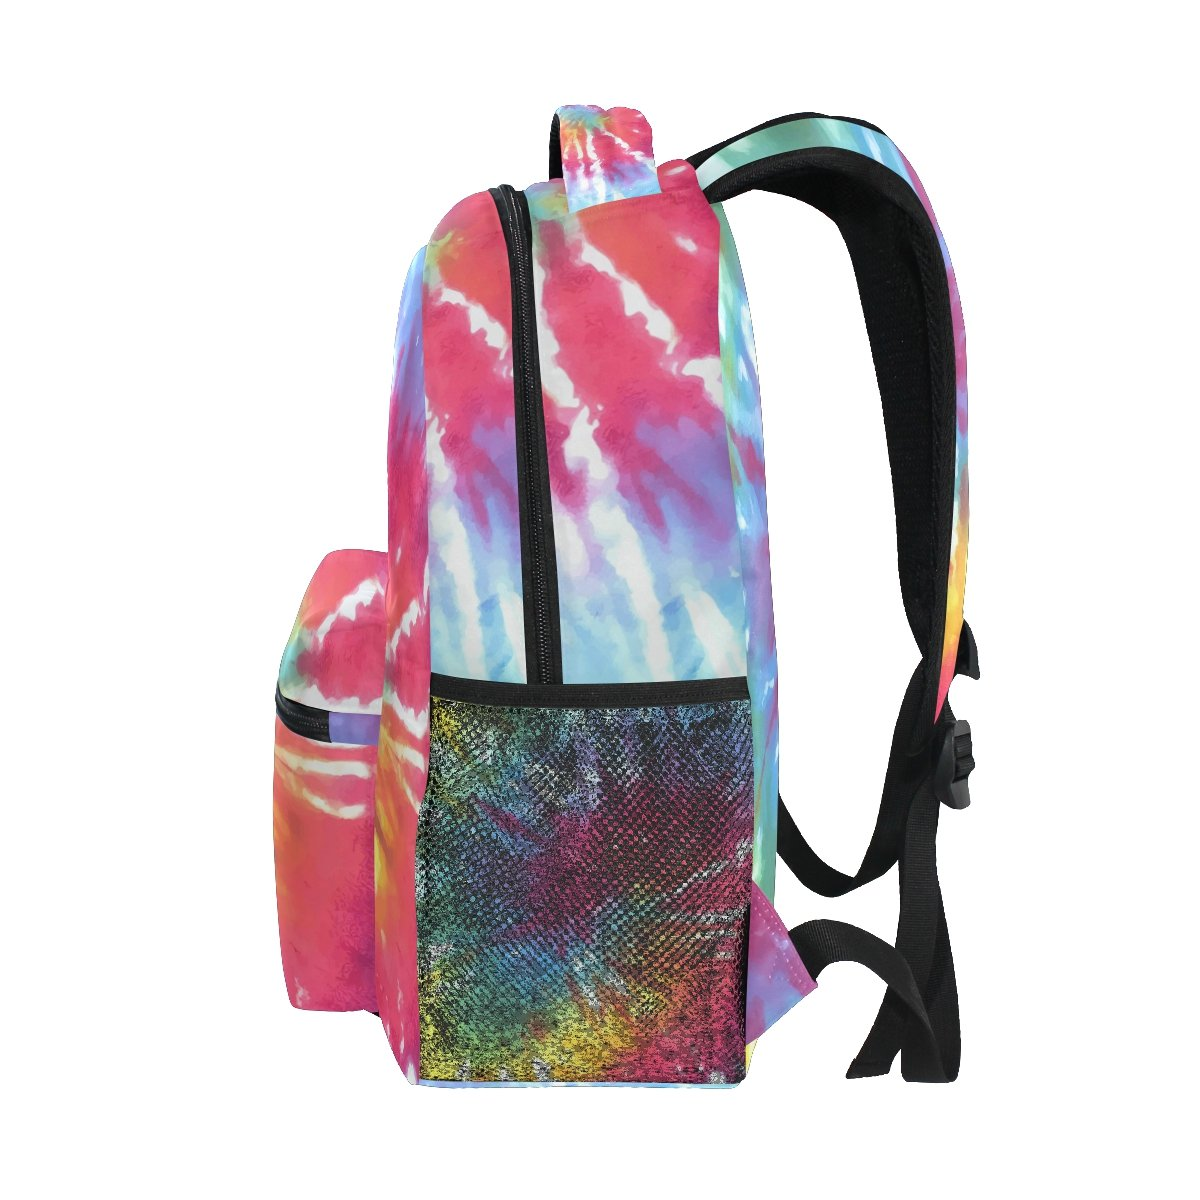 099d059591 BENNIGIRY Personalized Tie Dye Backpack Daypack Book Bag School Bags for  Boys Girls  Amazon.co.uk  Luggage